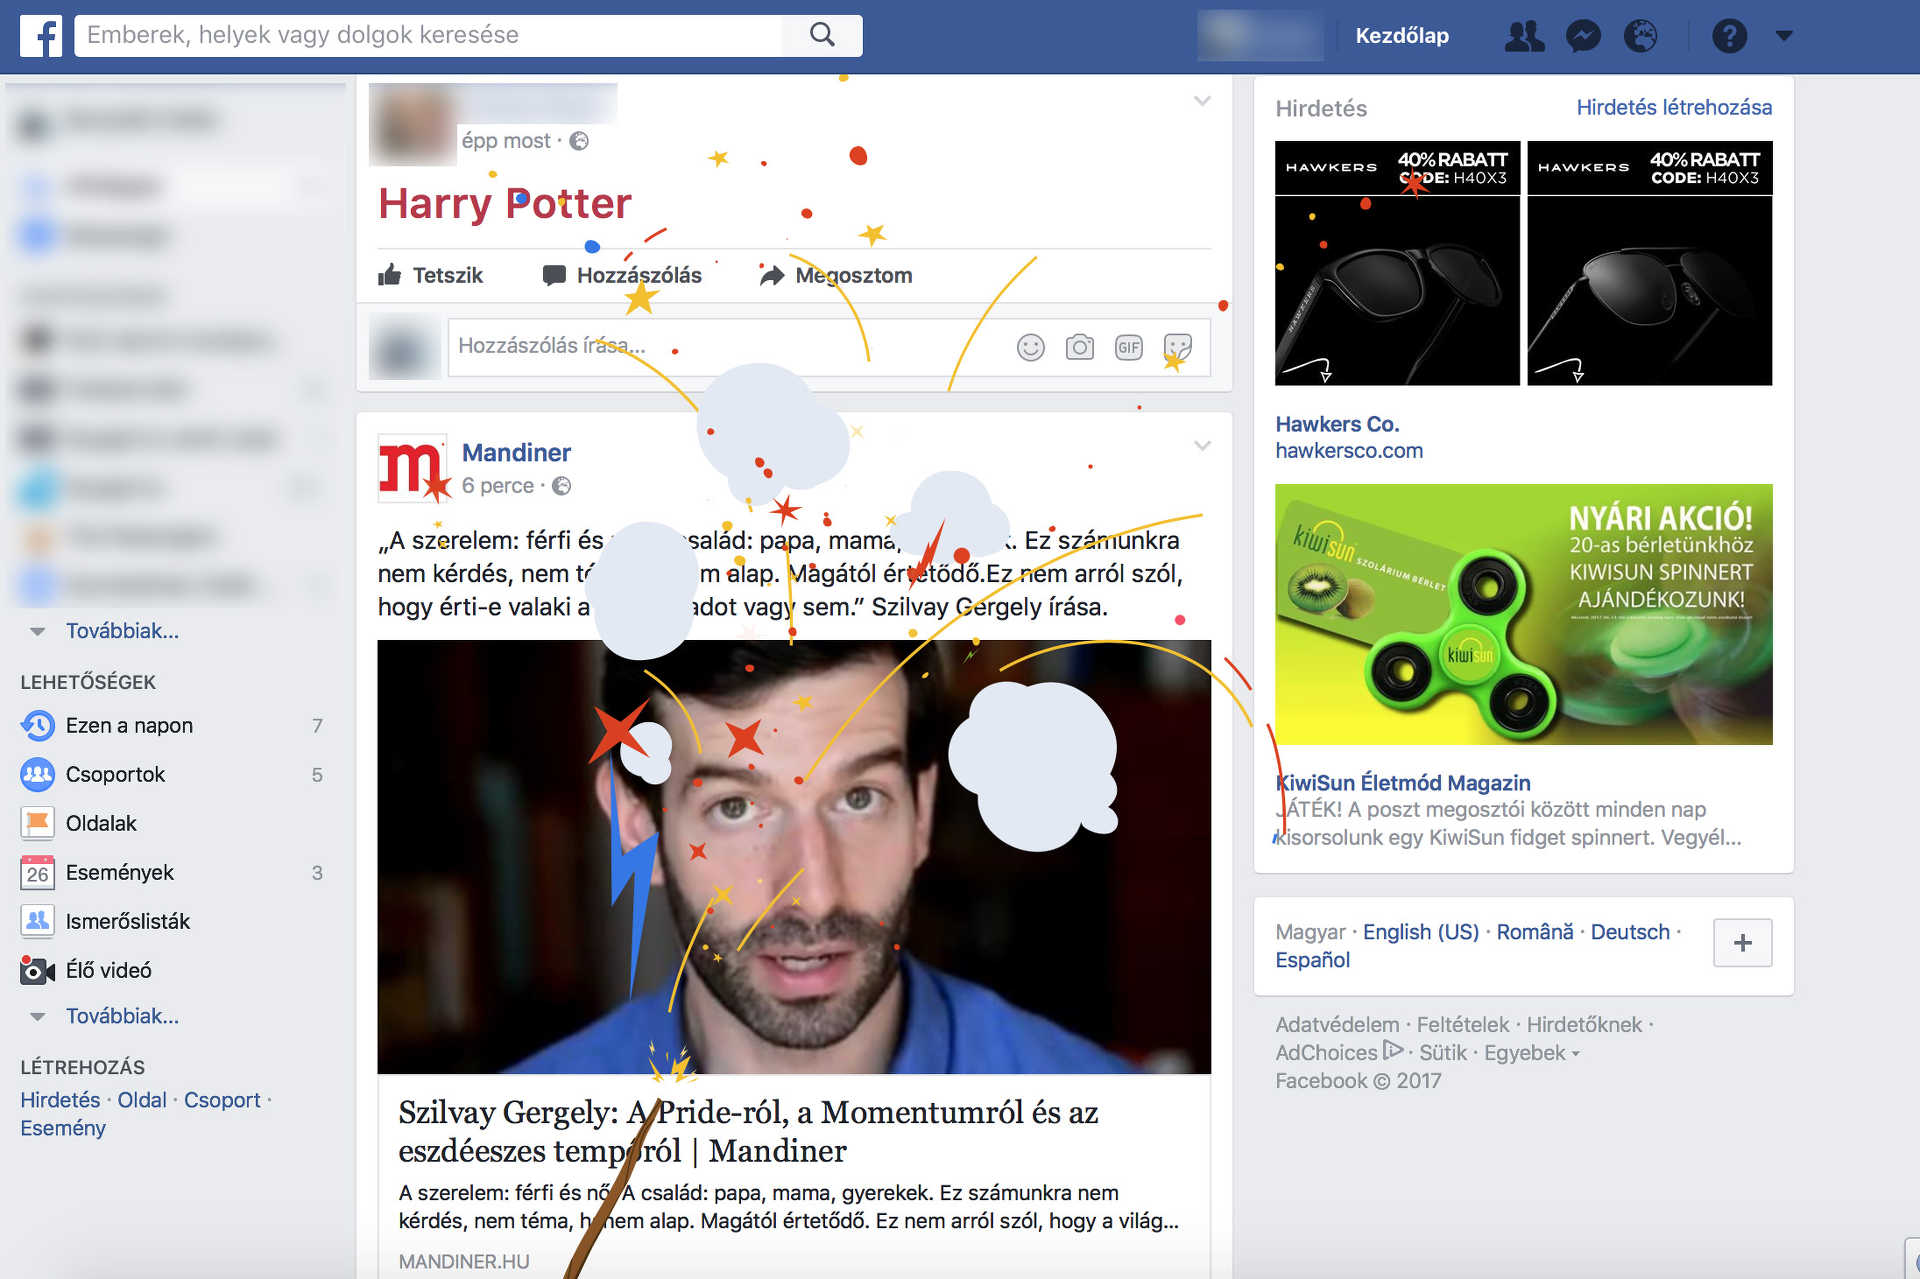 Harry Potter jubileum a Facebookon